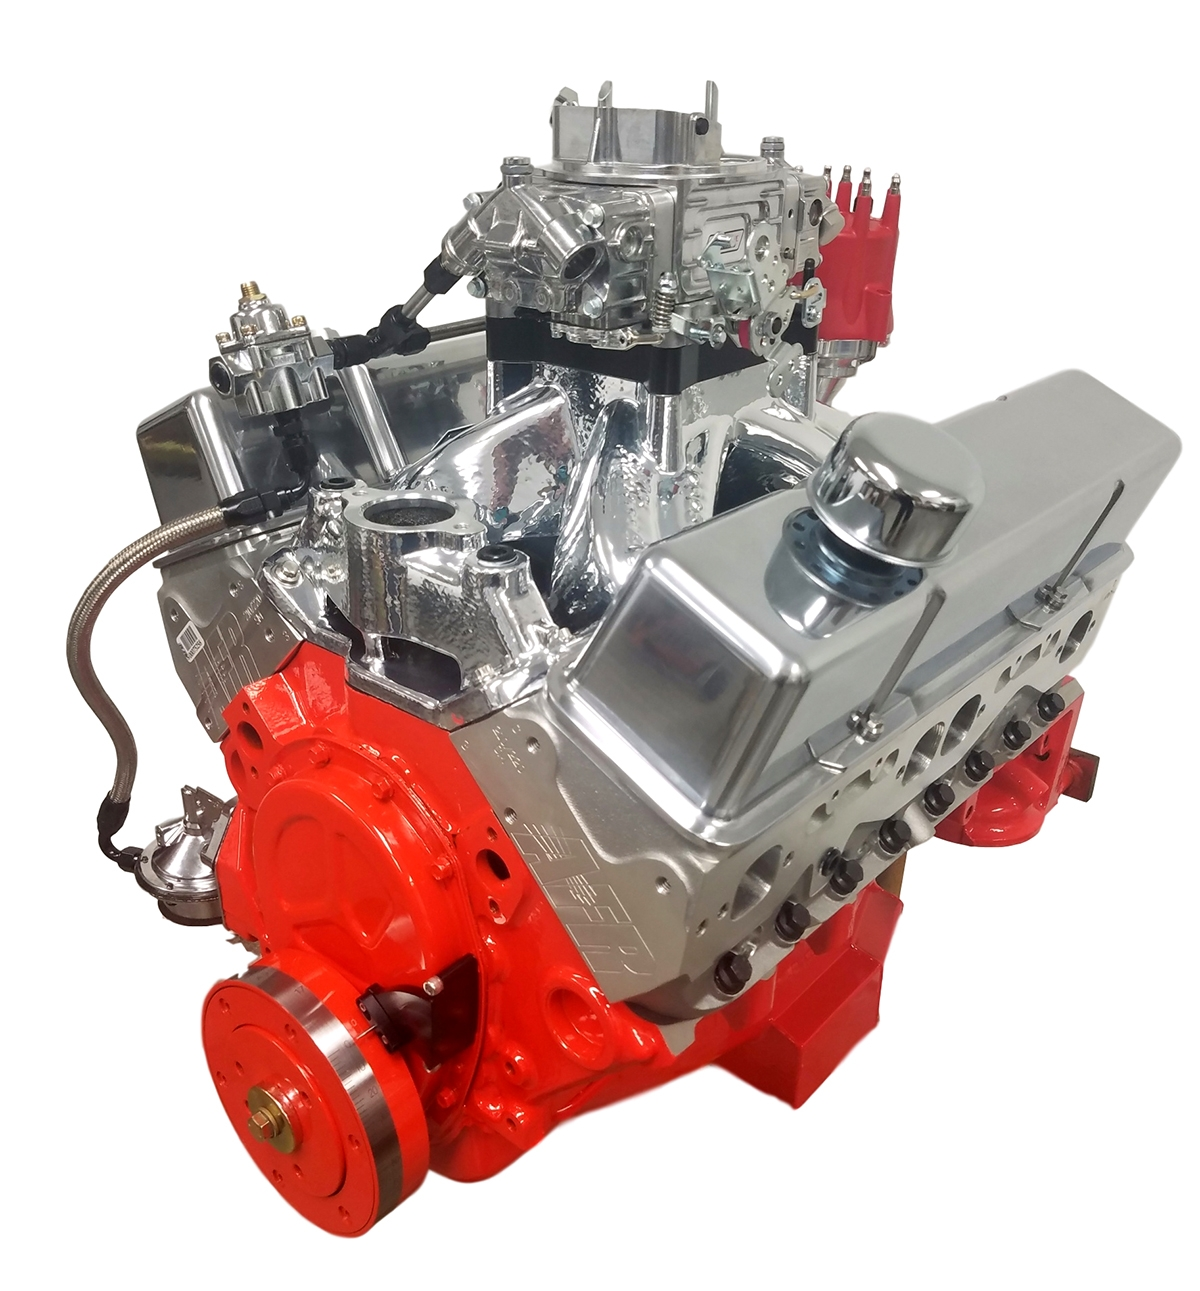 SB Chevy 427 Crate Engine (580+ HP